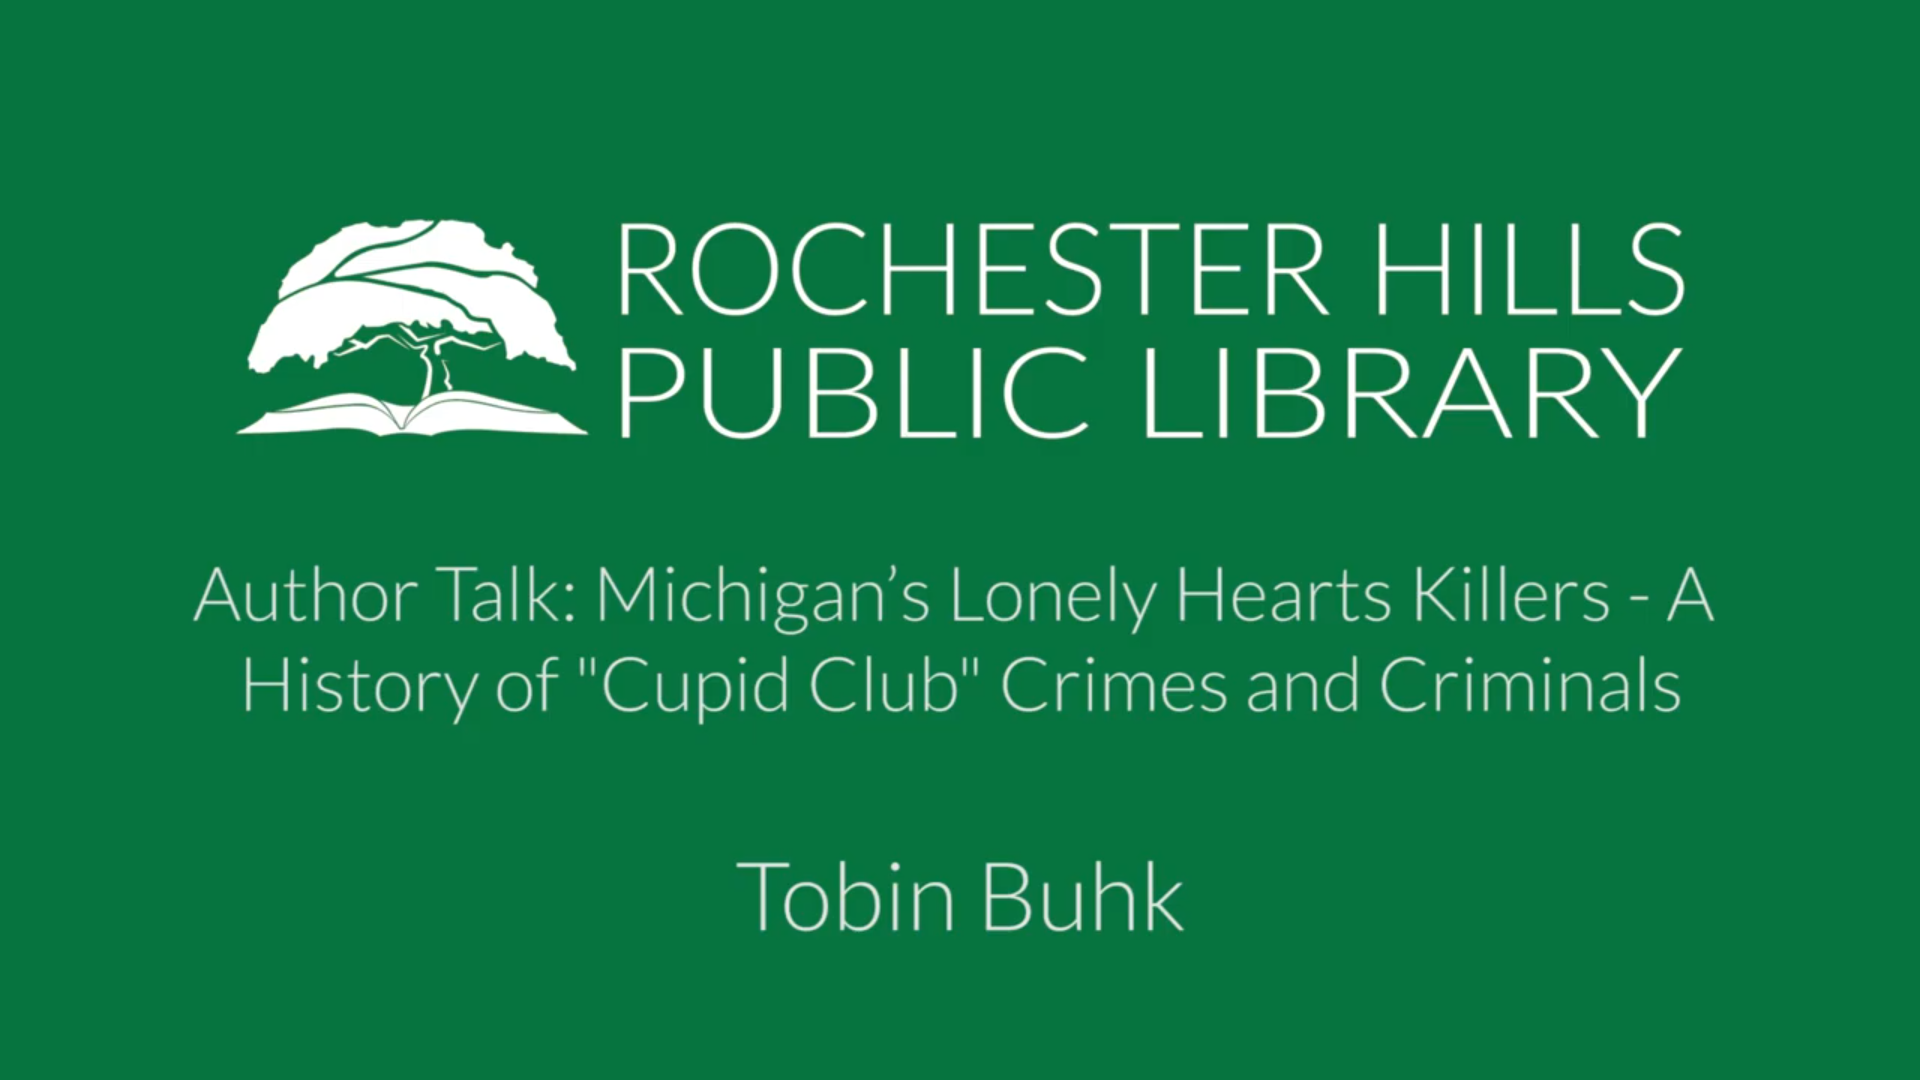 Author Talk: Michigan's Lonely Hearts Killers